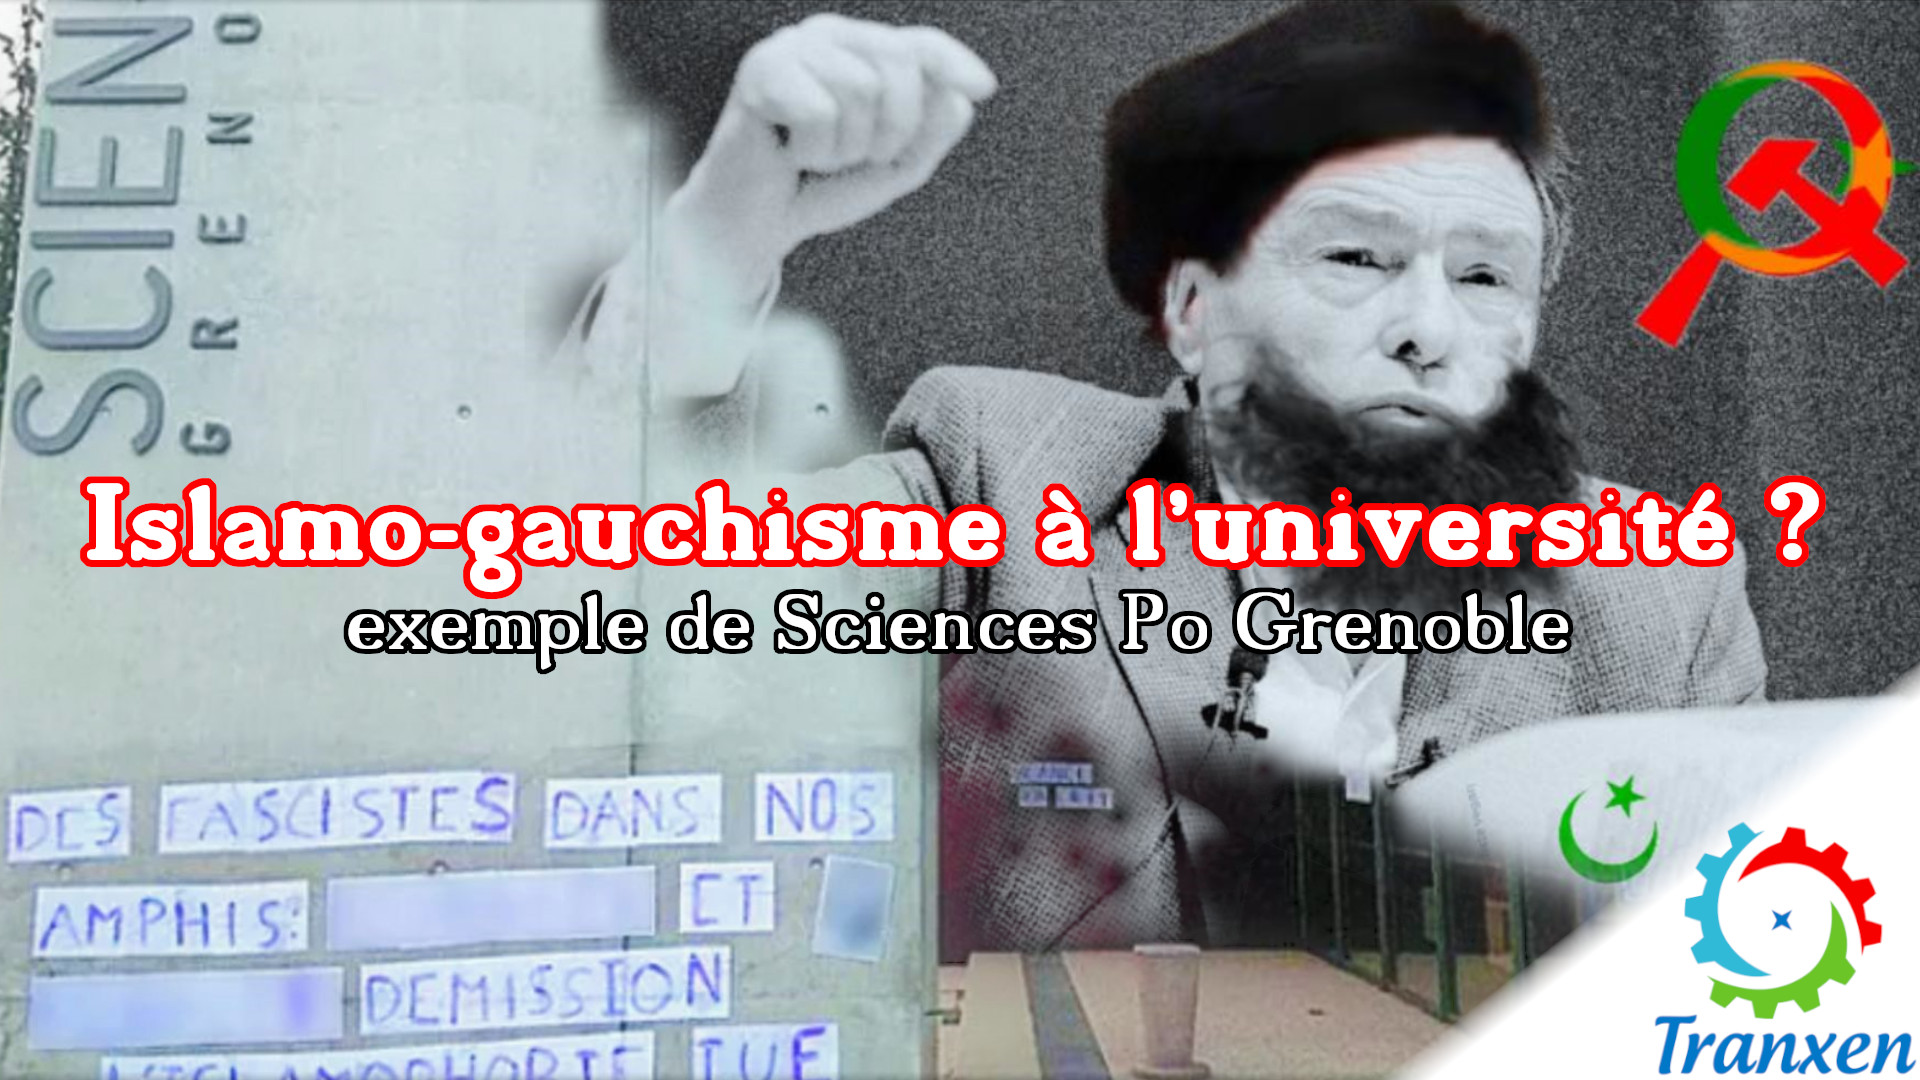 Islamo-gauchisme à l'université ? (non) – Exemple de Sciences Po Grenoble.